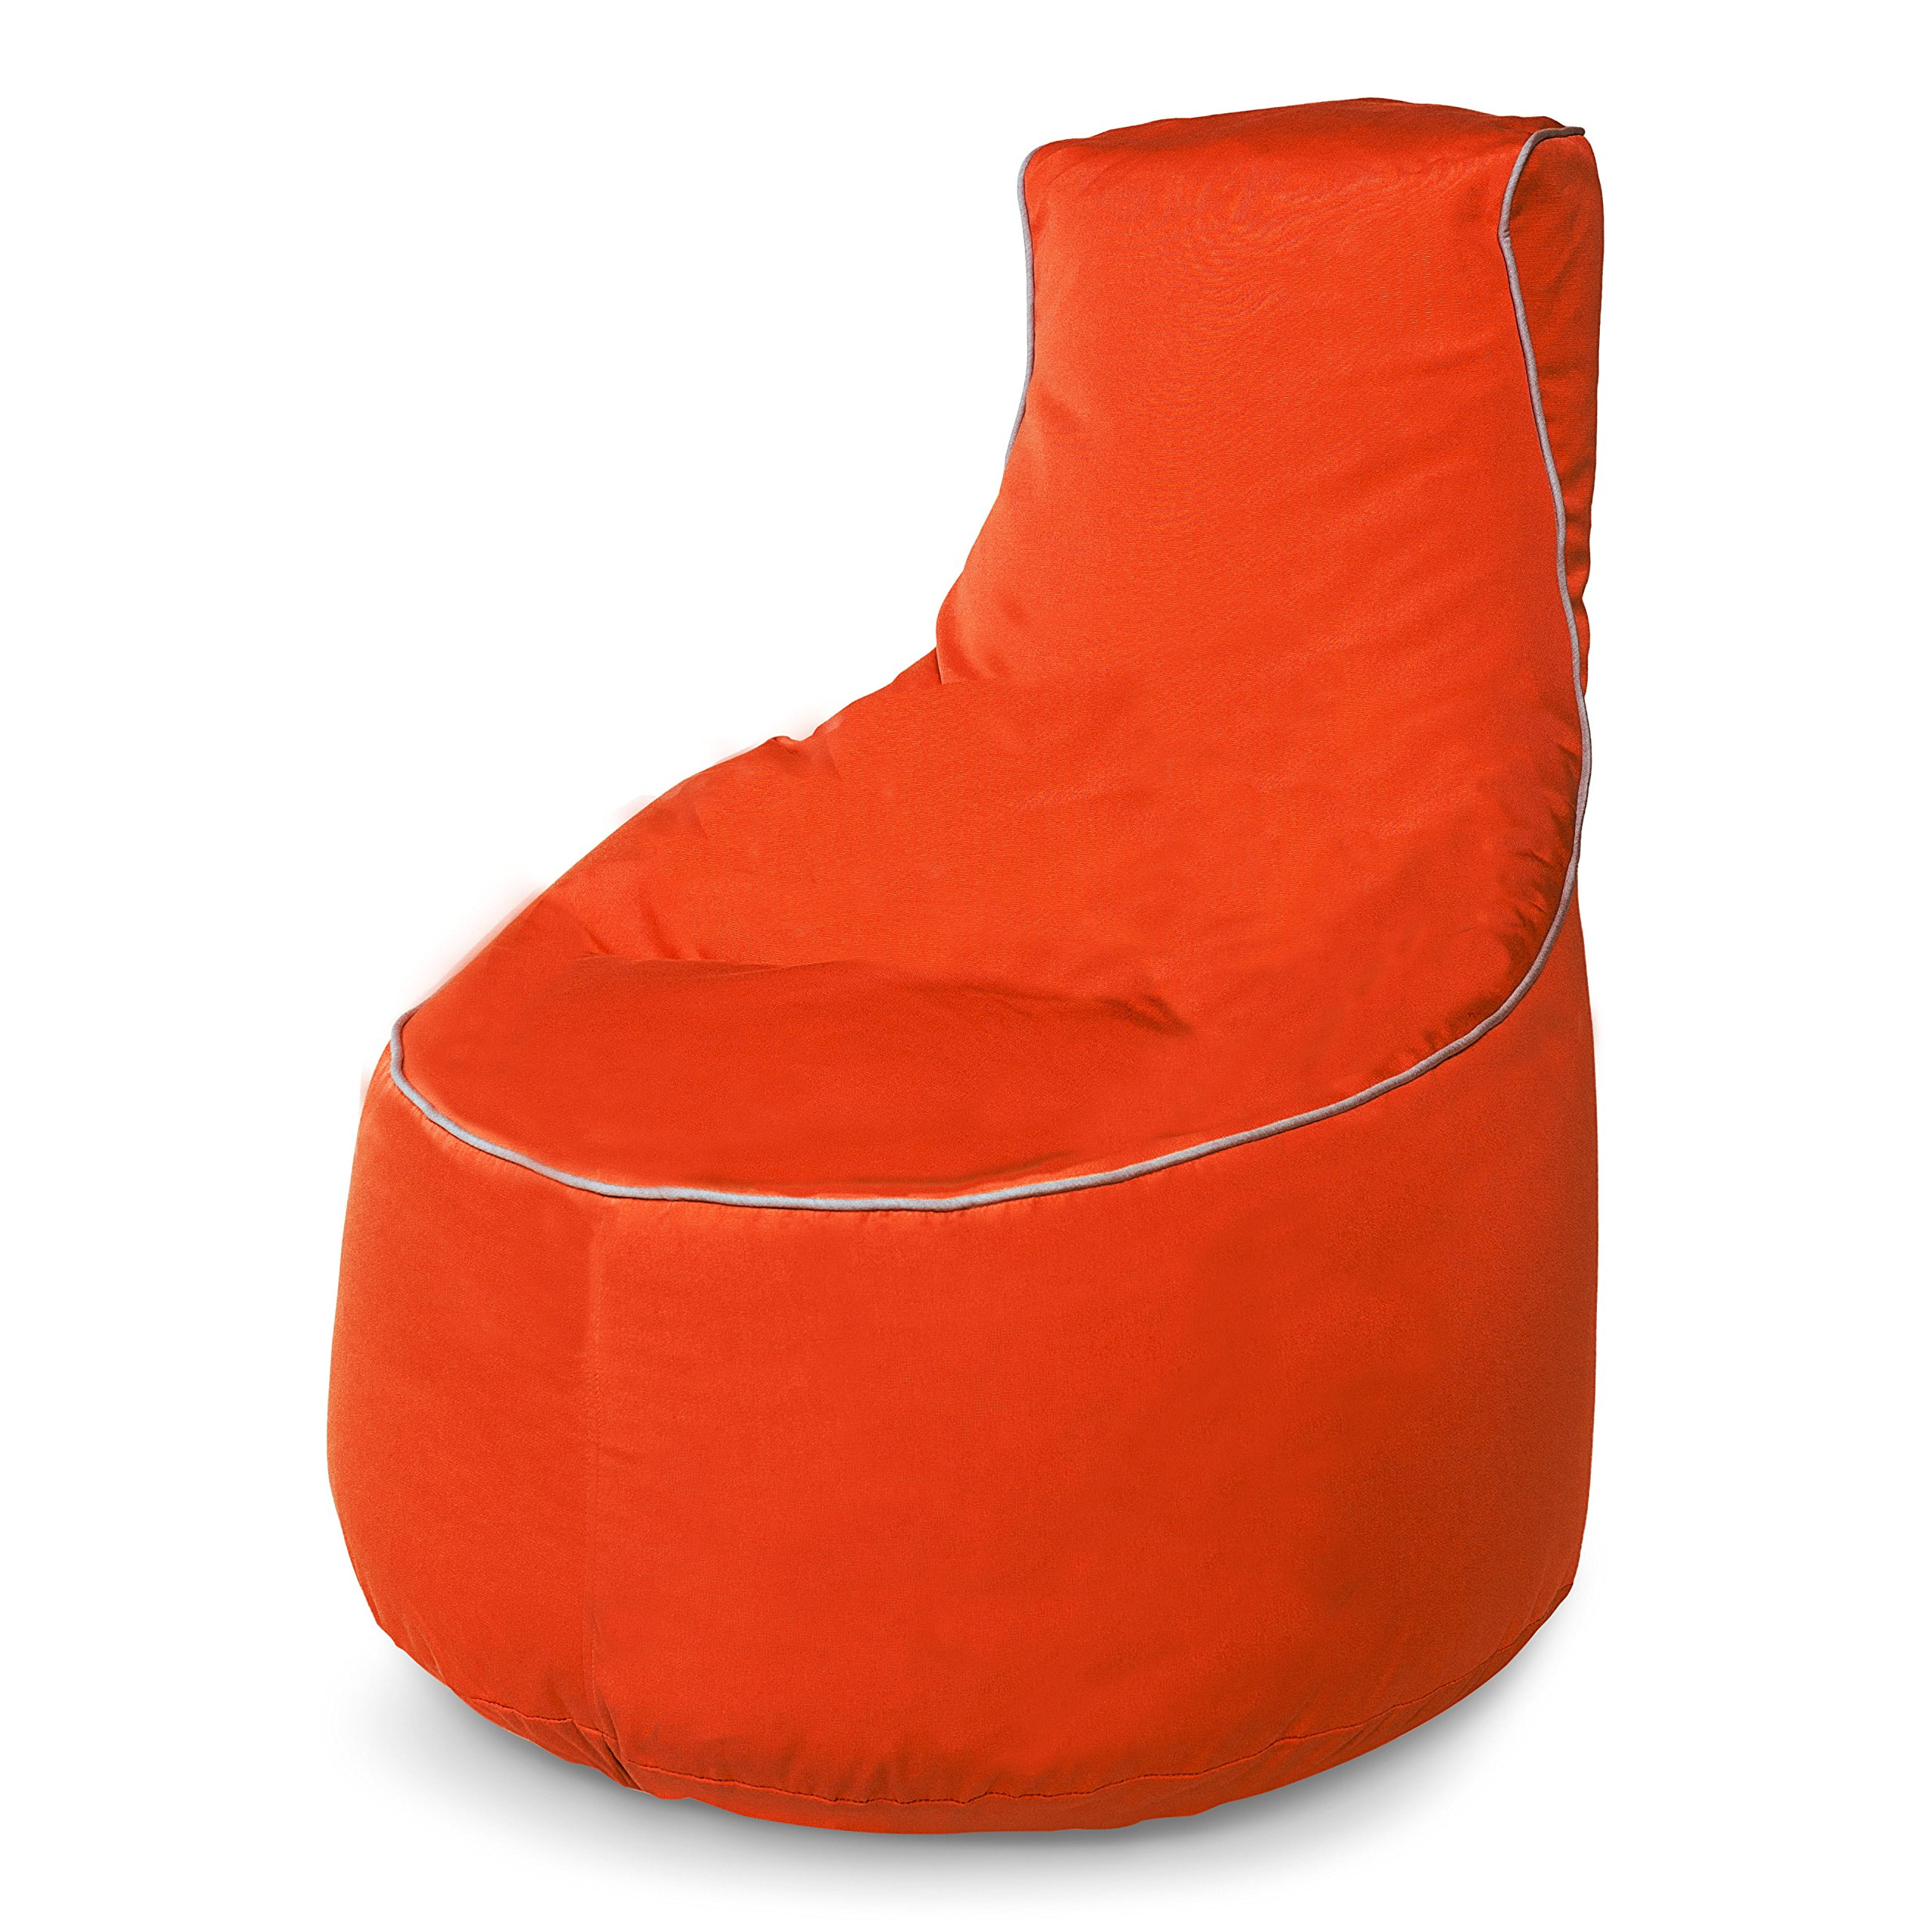 Sunbrella Upright Bean Bag Chair with Lumbar Support